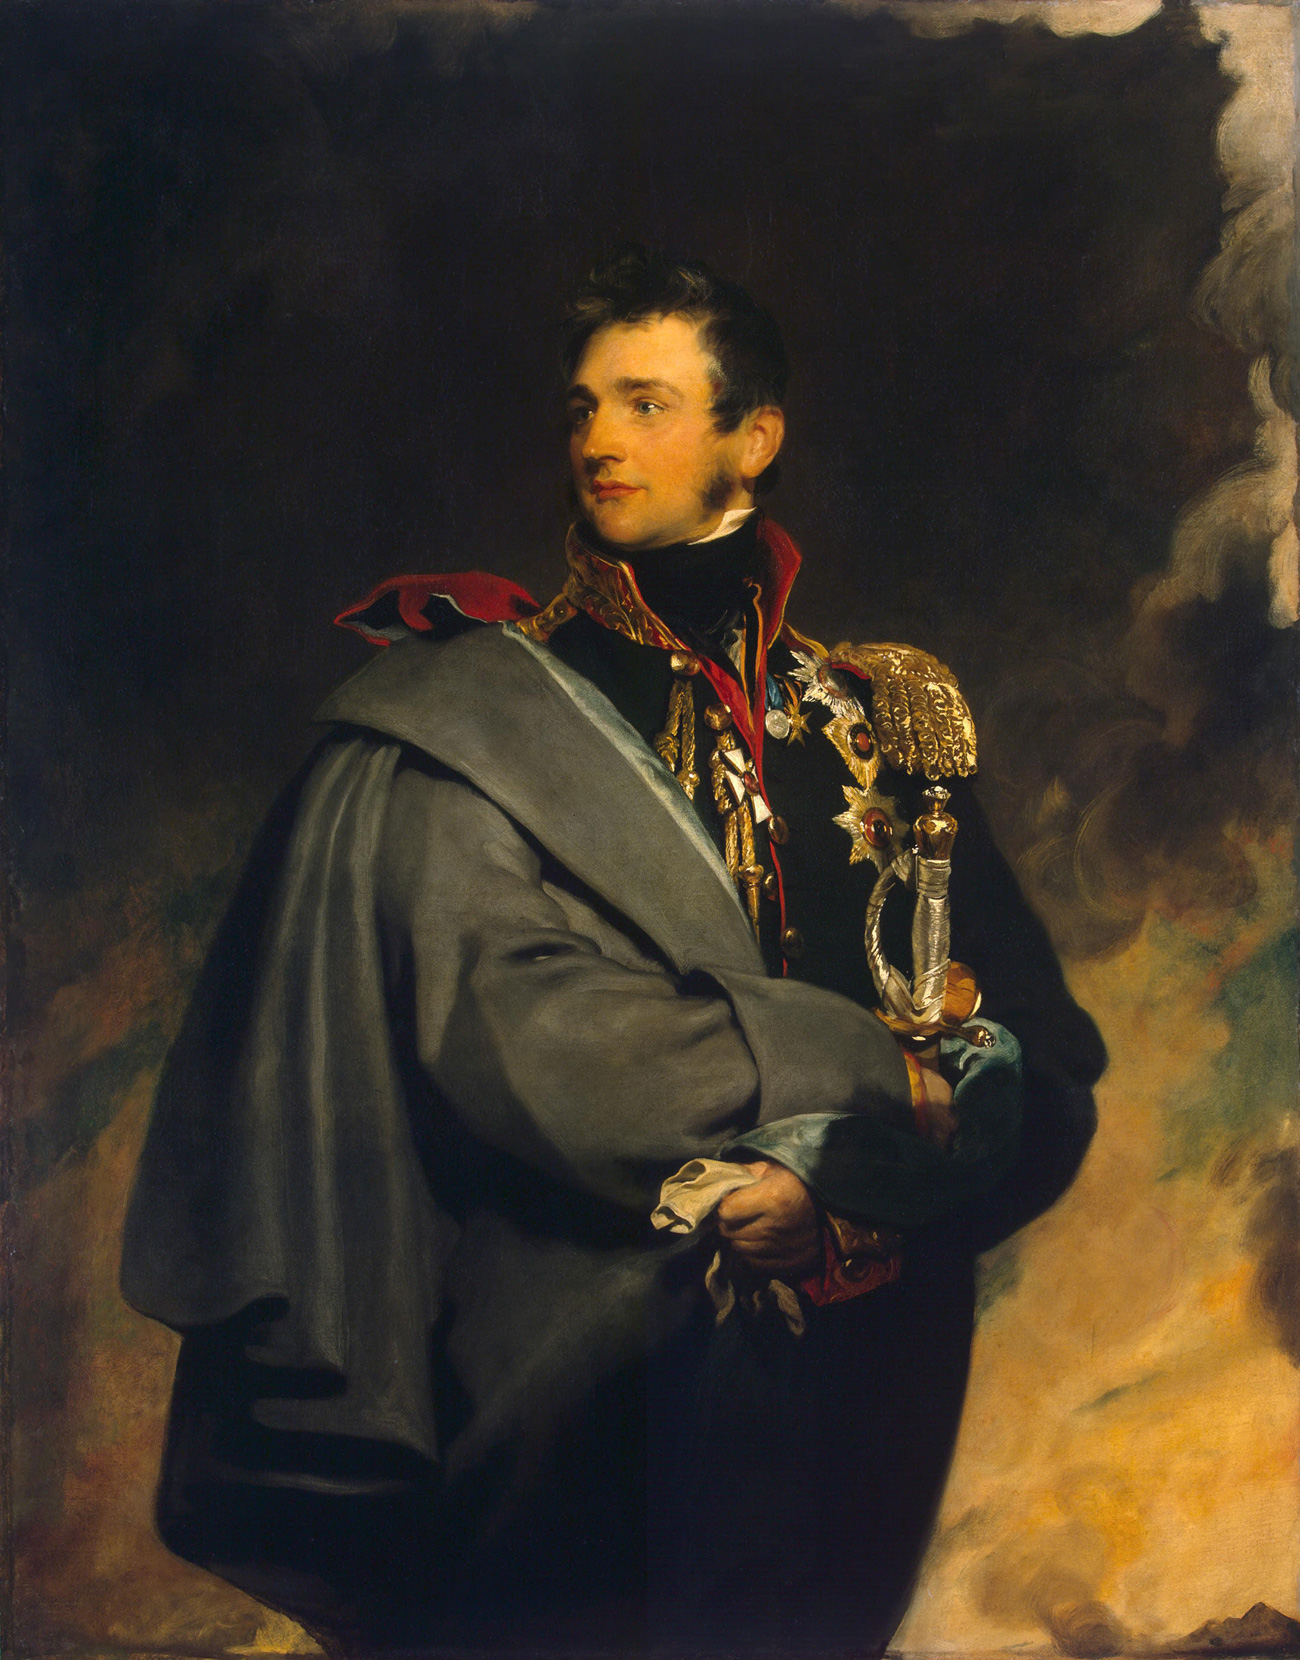 Mikhail Vorontsov by Thomas Lawrence. Source: The State Hermitage Museum